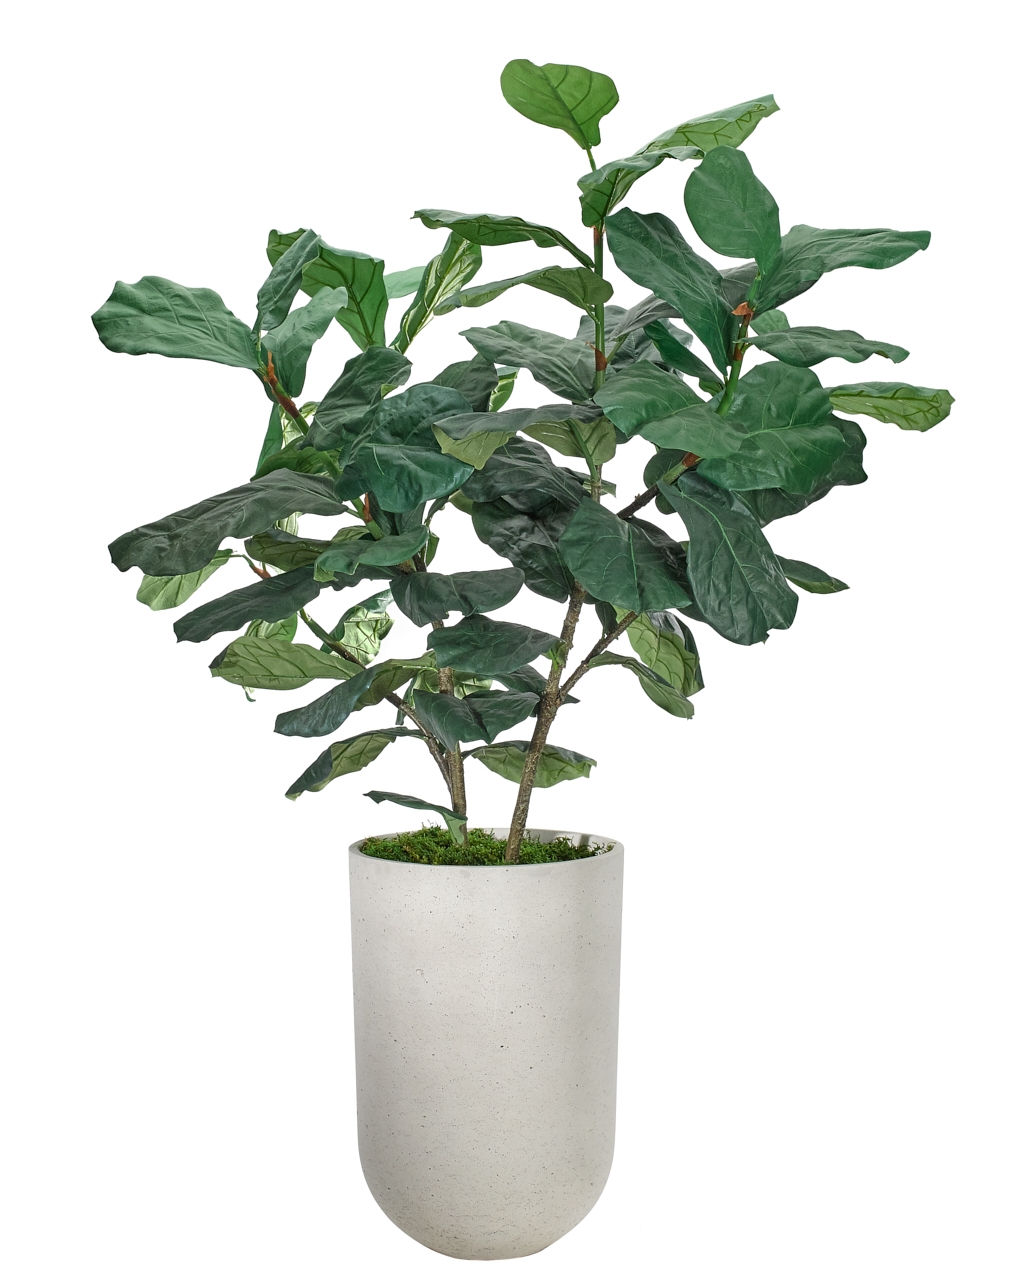 B/O JULY Fiddle Leaf, Concrete Finish Planter, 39wx44dx59h